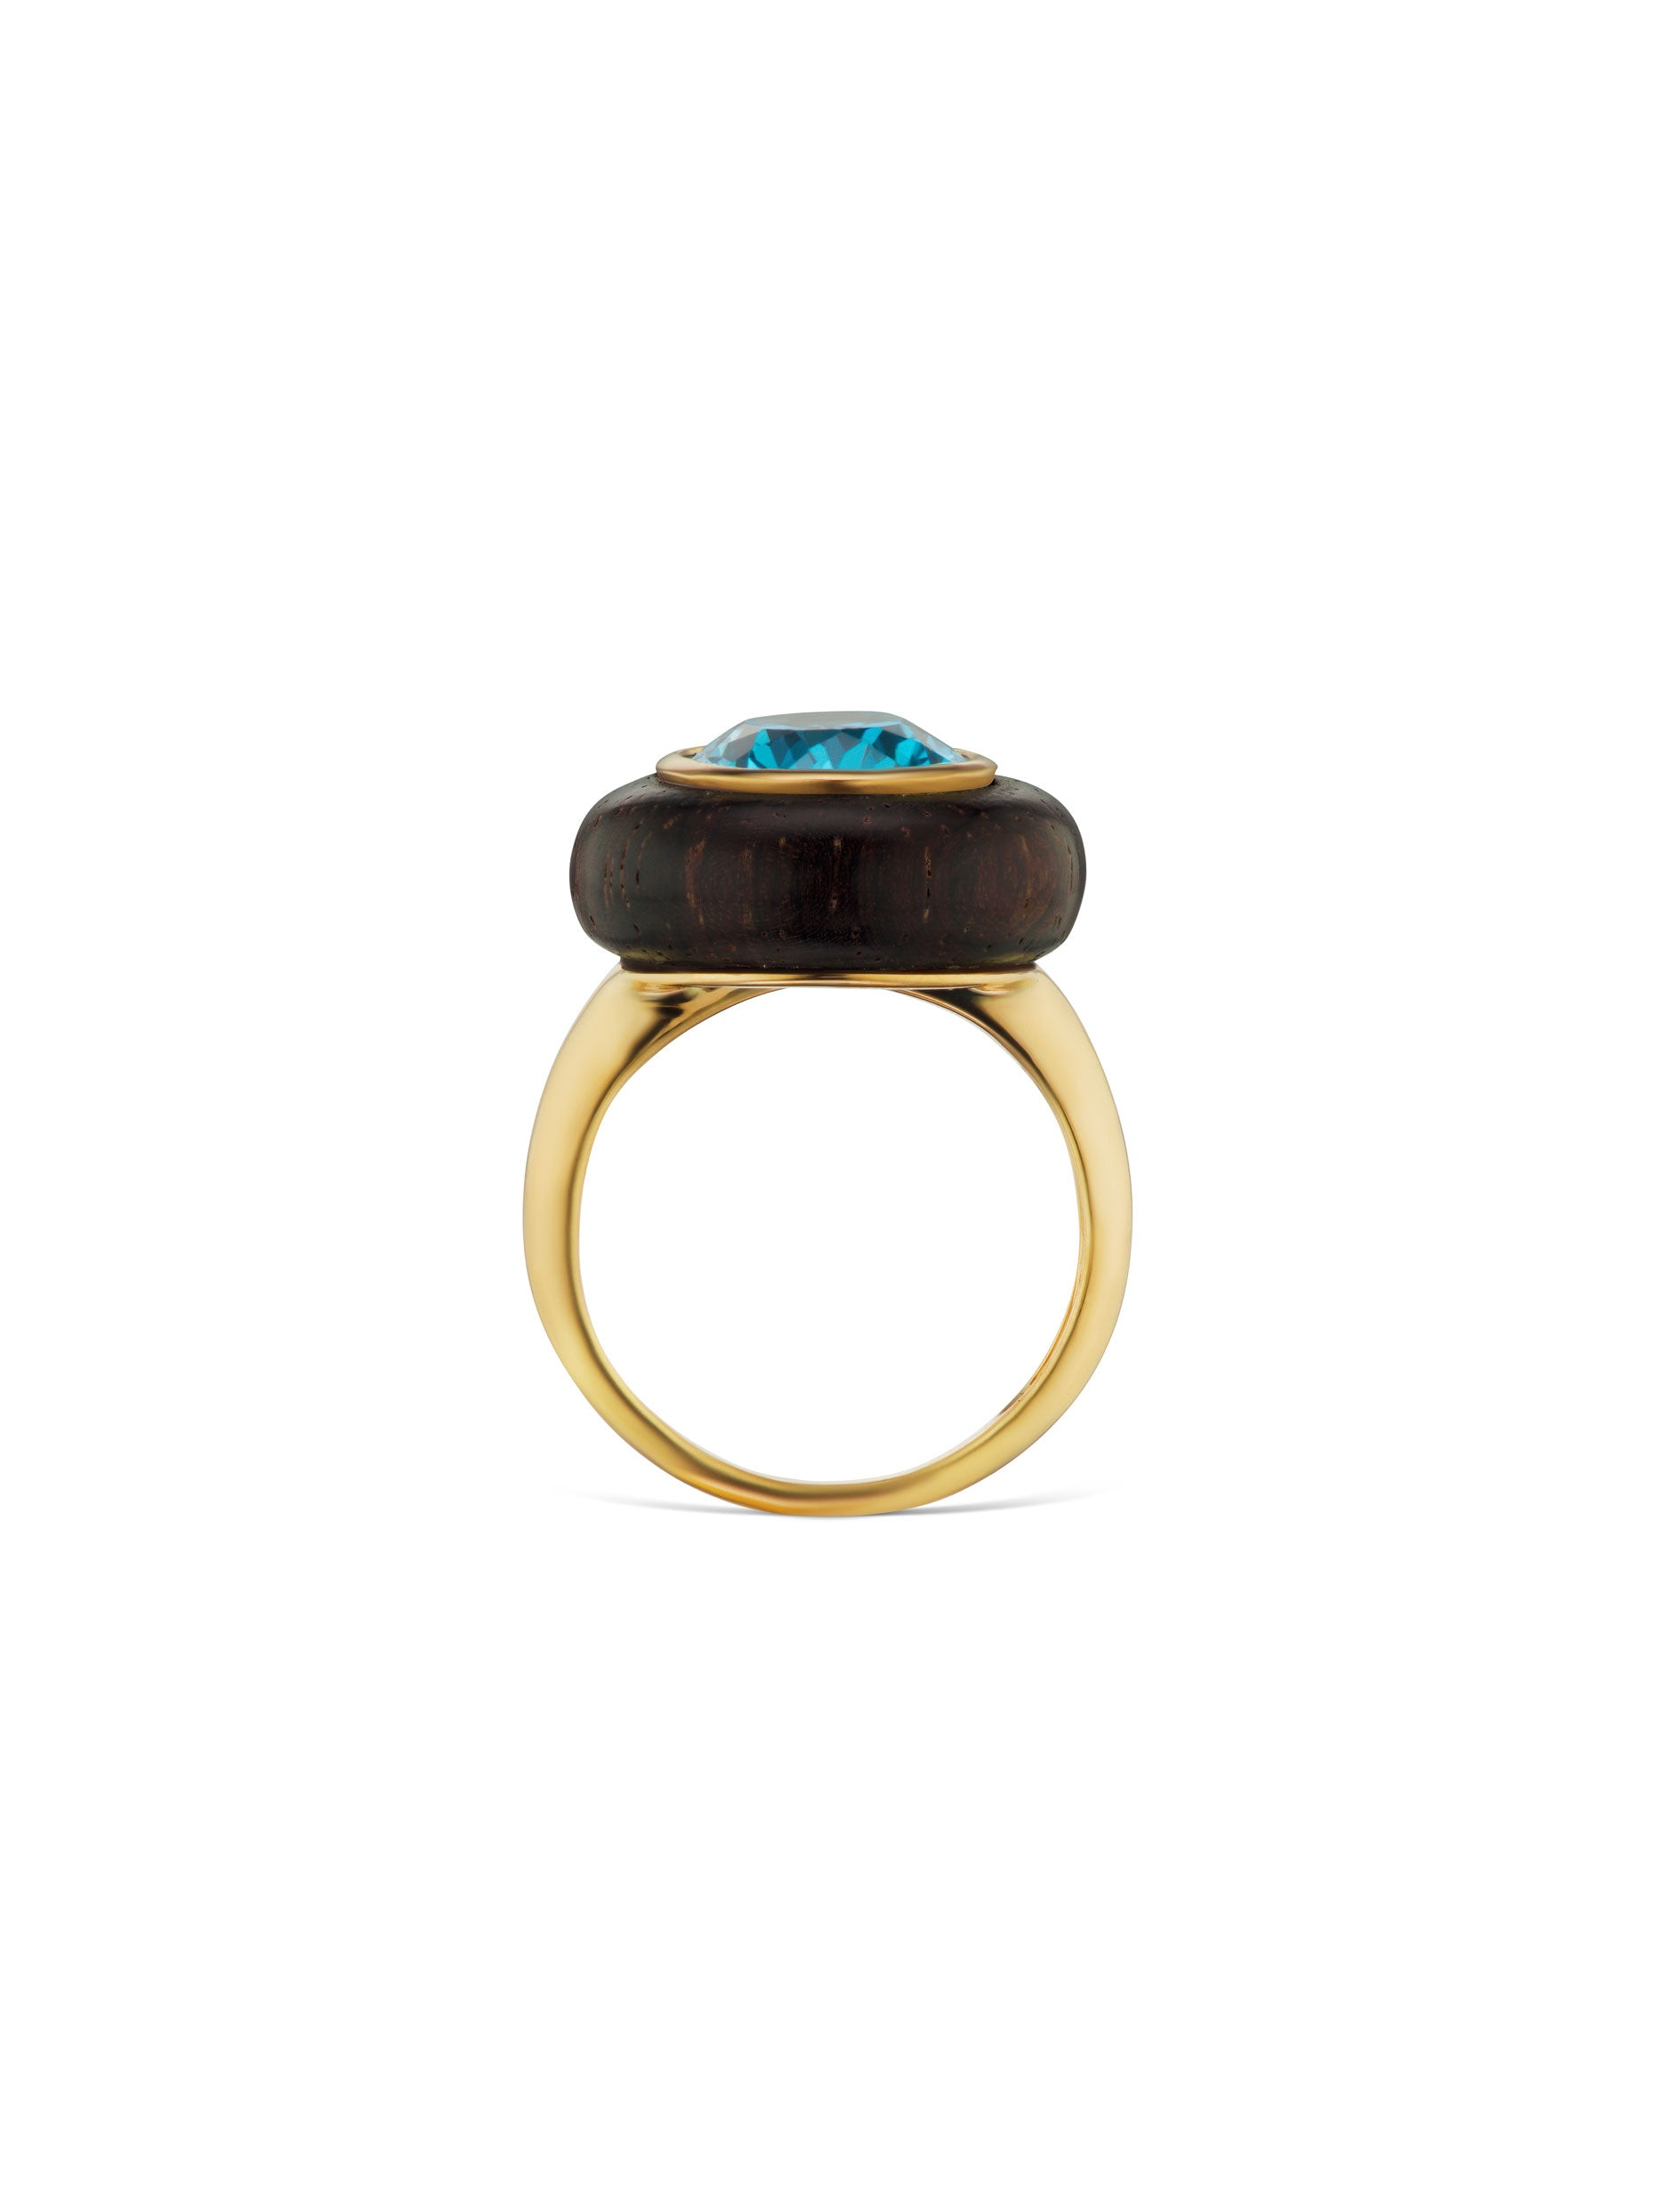 Voyager North-South Oval Blue Topaz Wood Ring